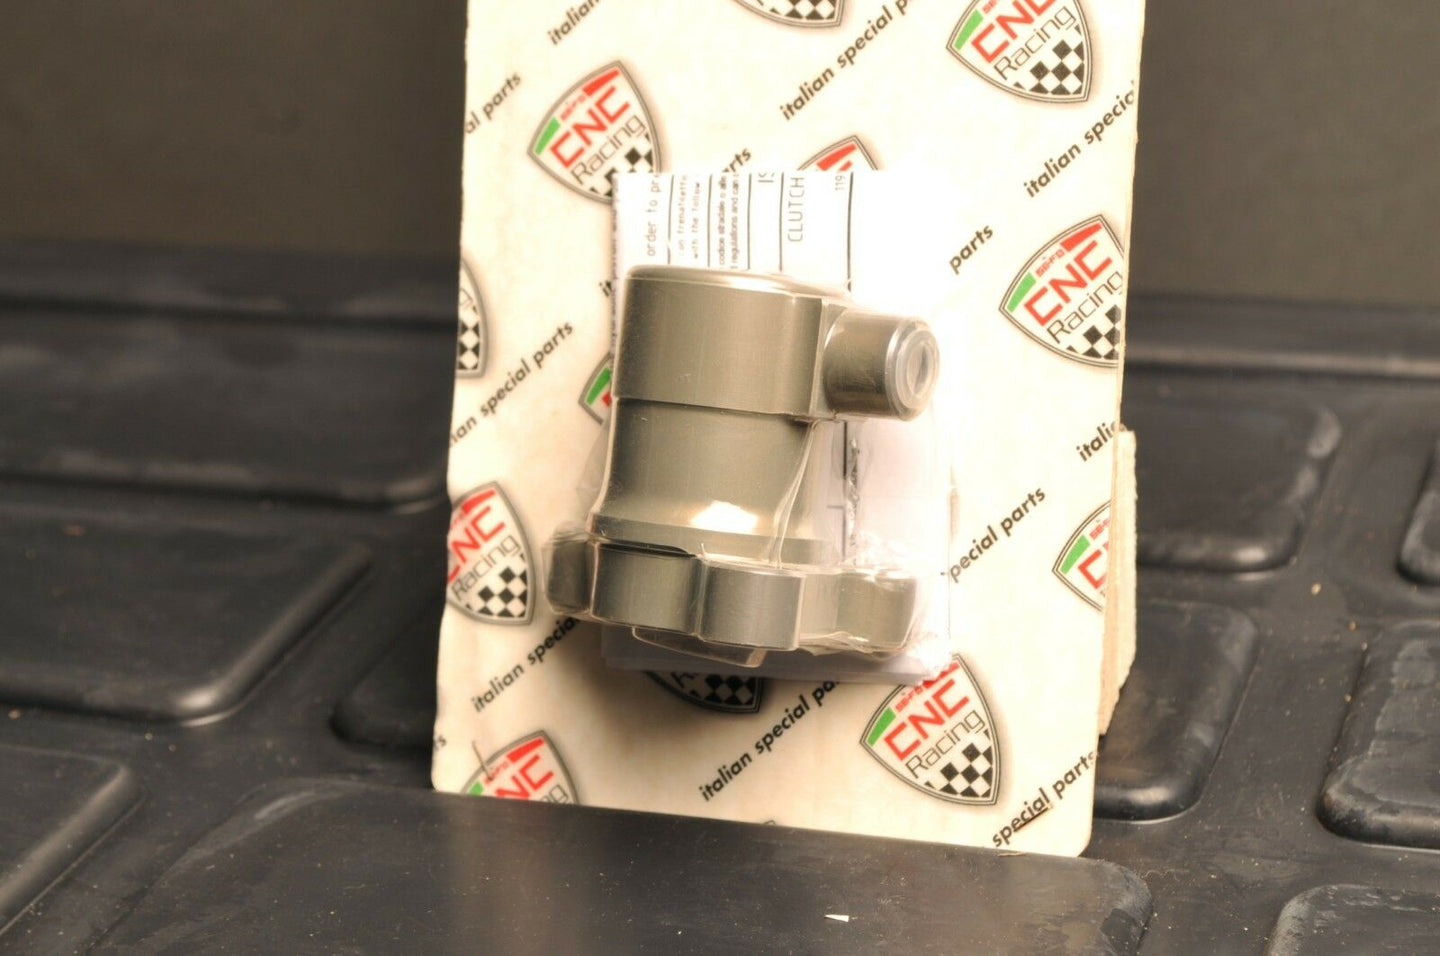 CNC RACING AF292N DUCATI CLUTCH SLAVE CYLINDER SBK 1199 + PANIGALE NATURAL 26mm